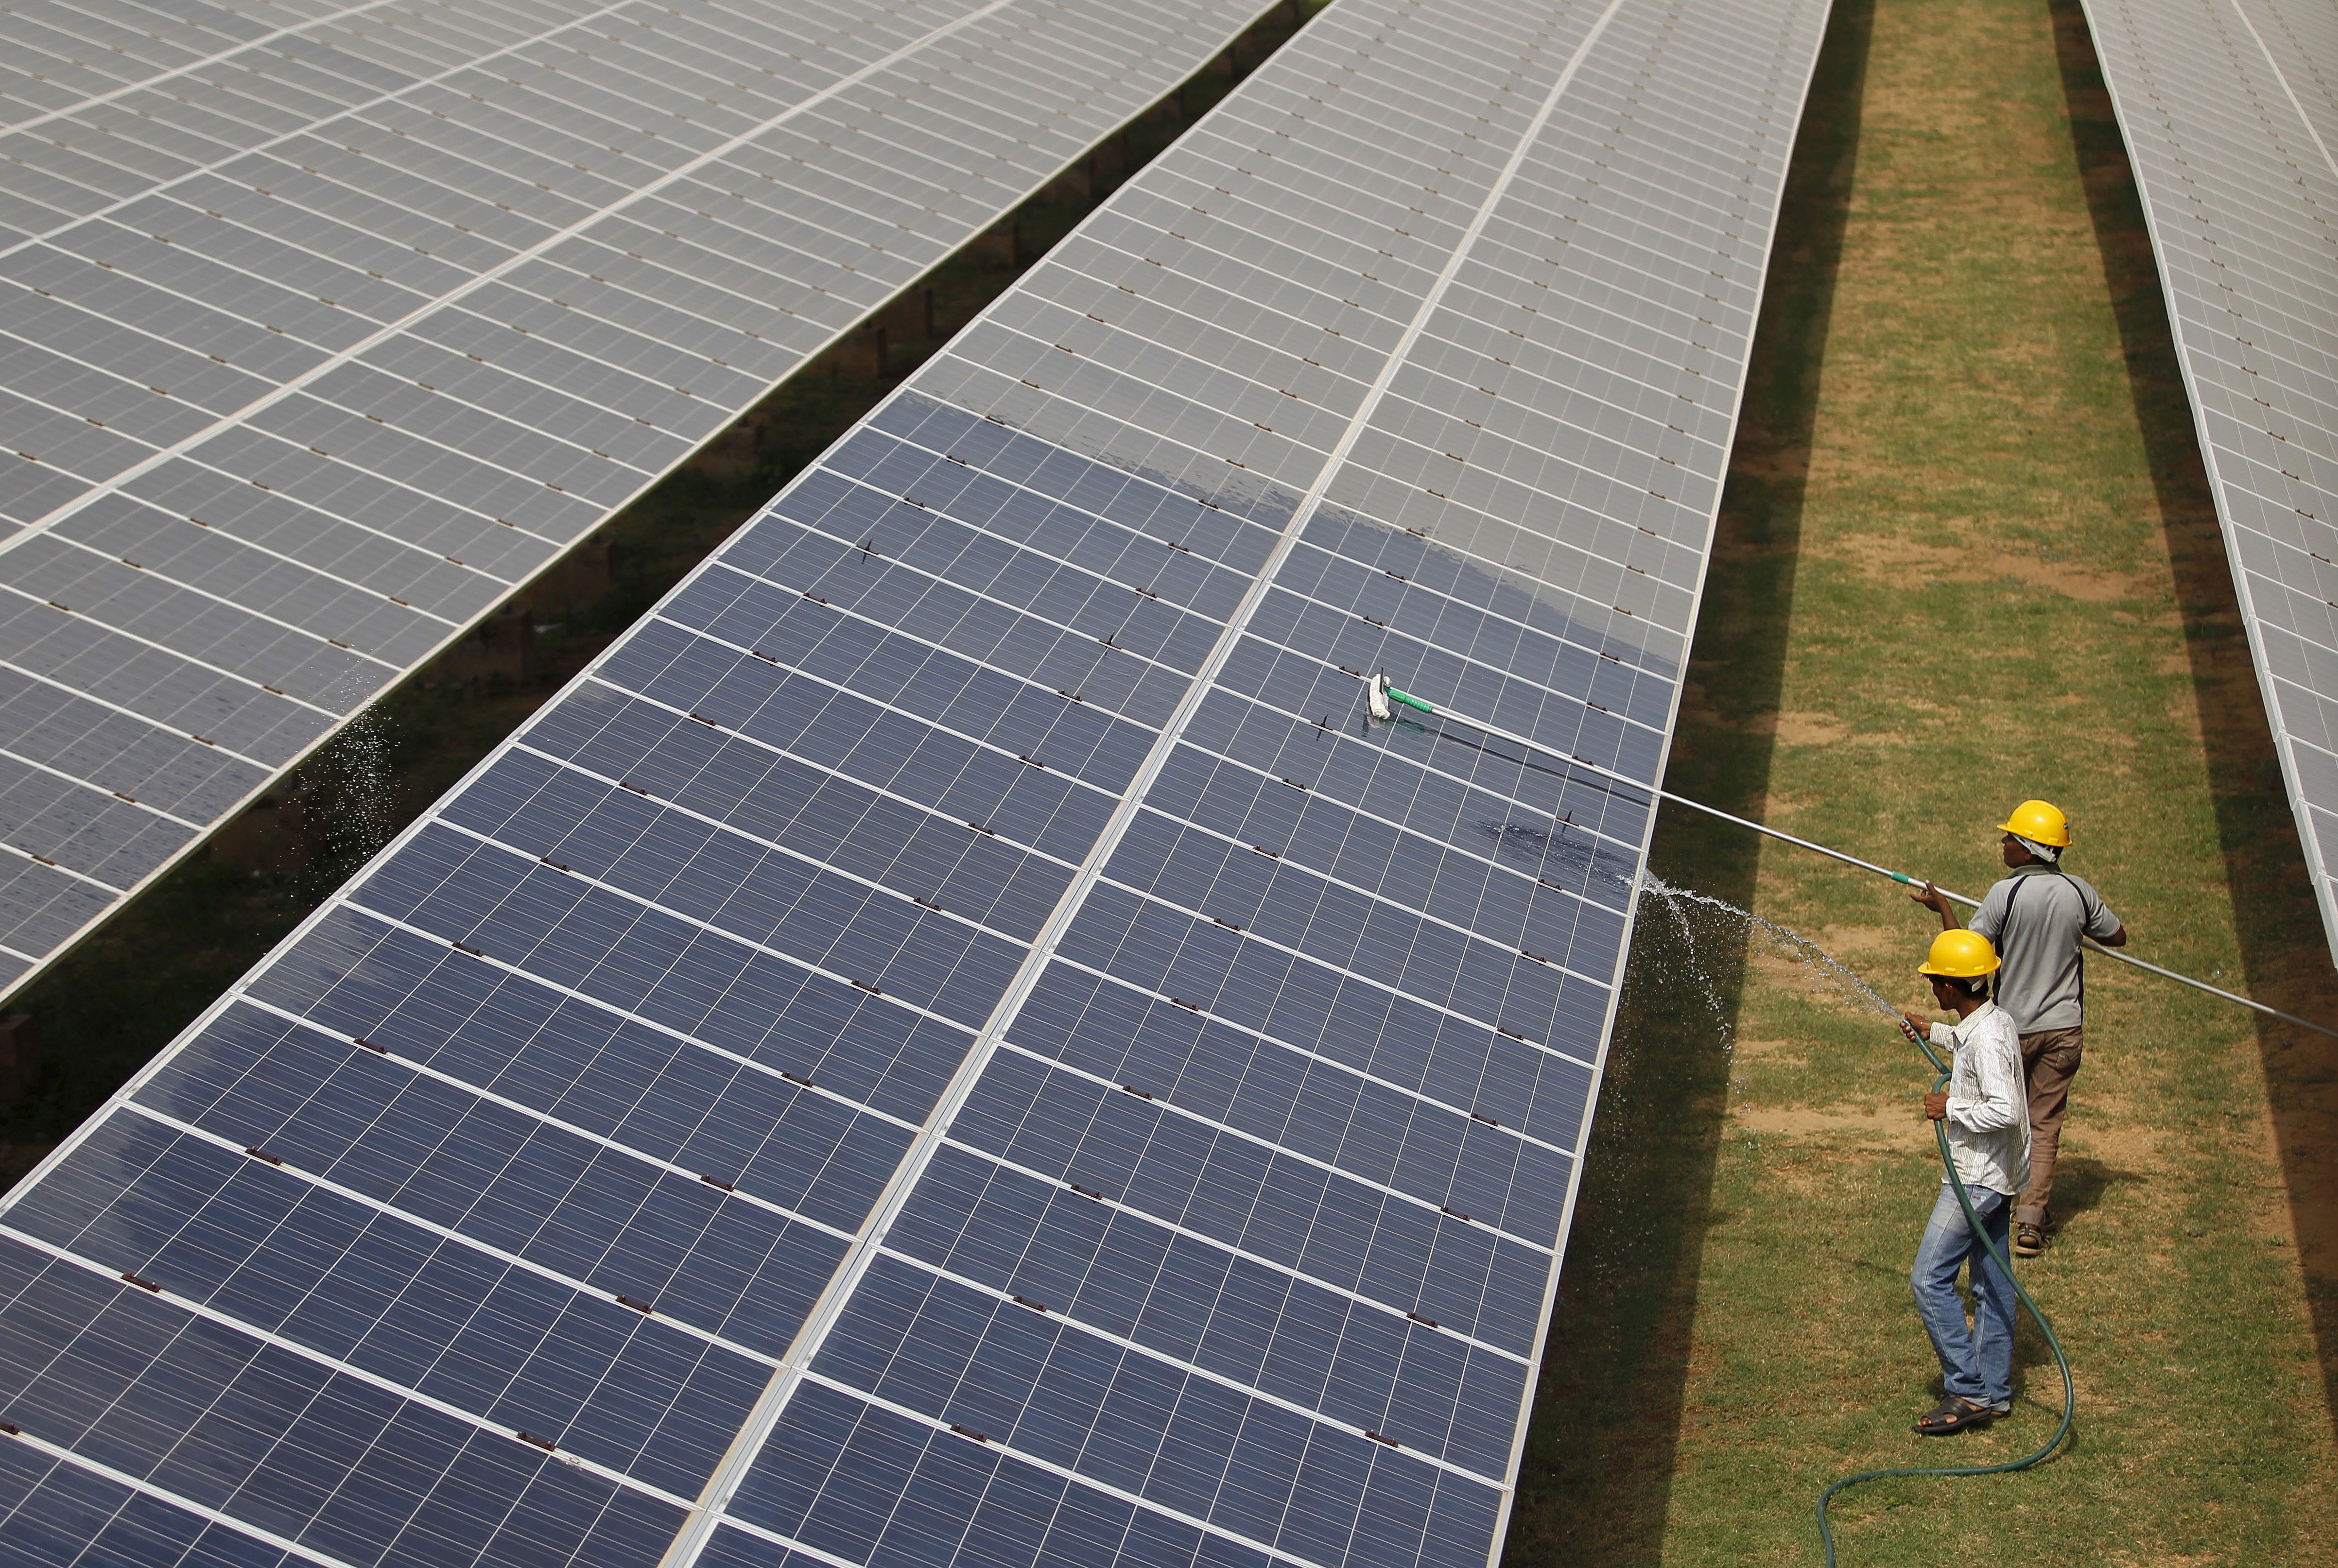 Workers clean photovoltaic panels inside a solar power plant in Gujarat, India,